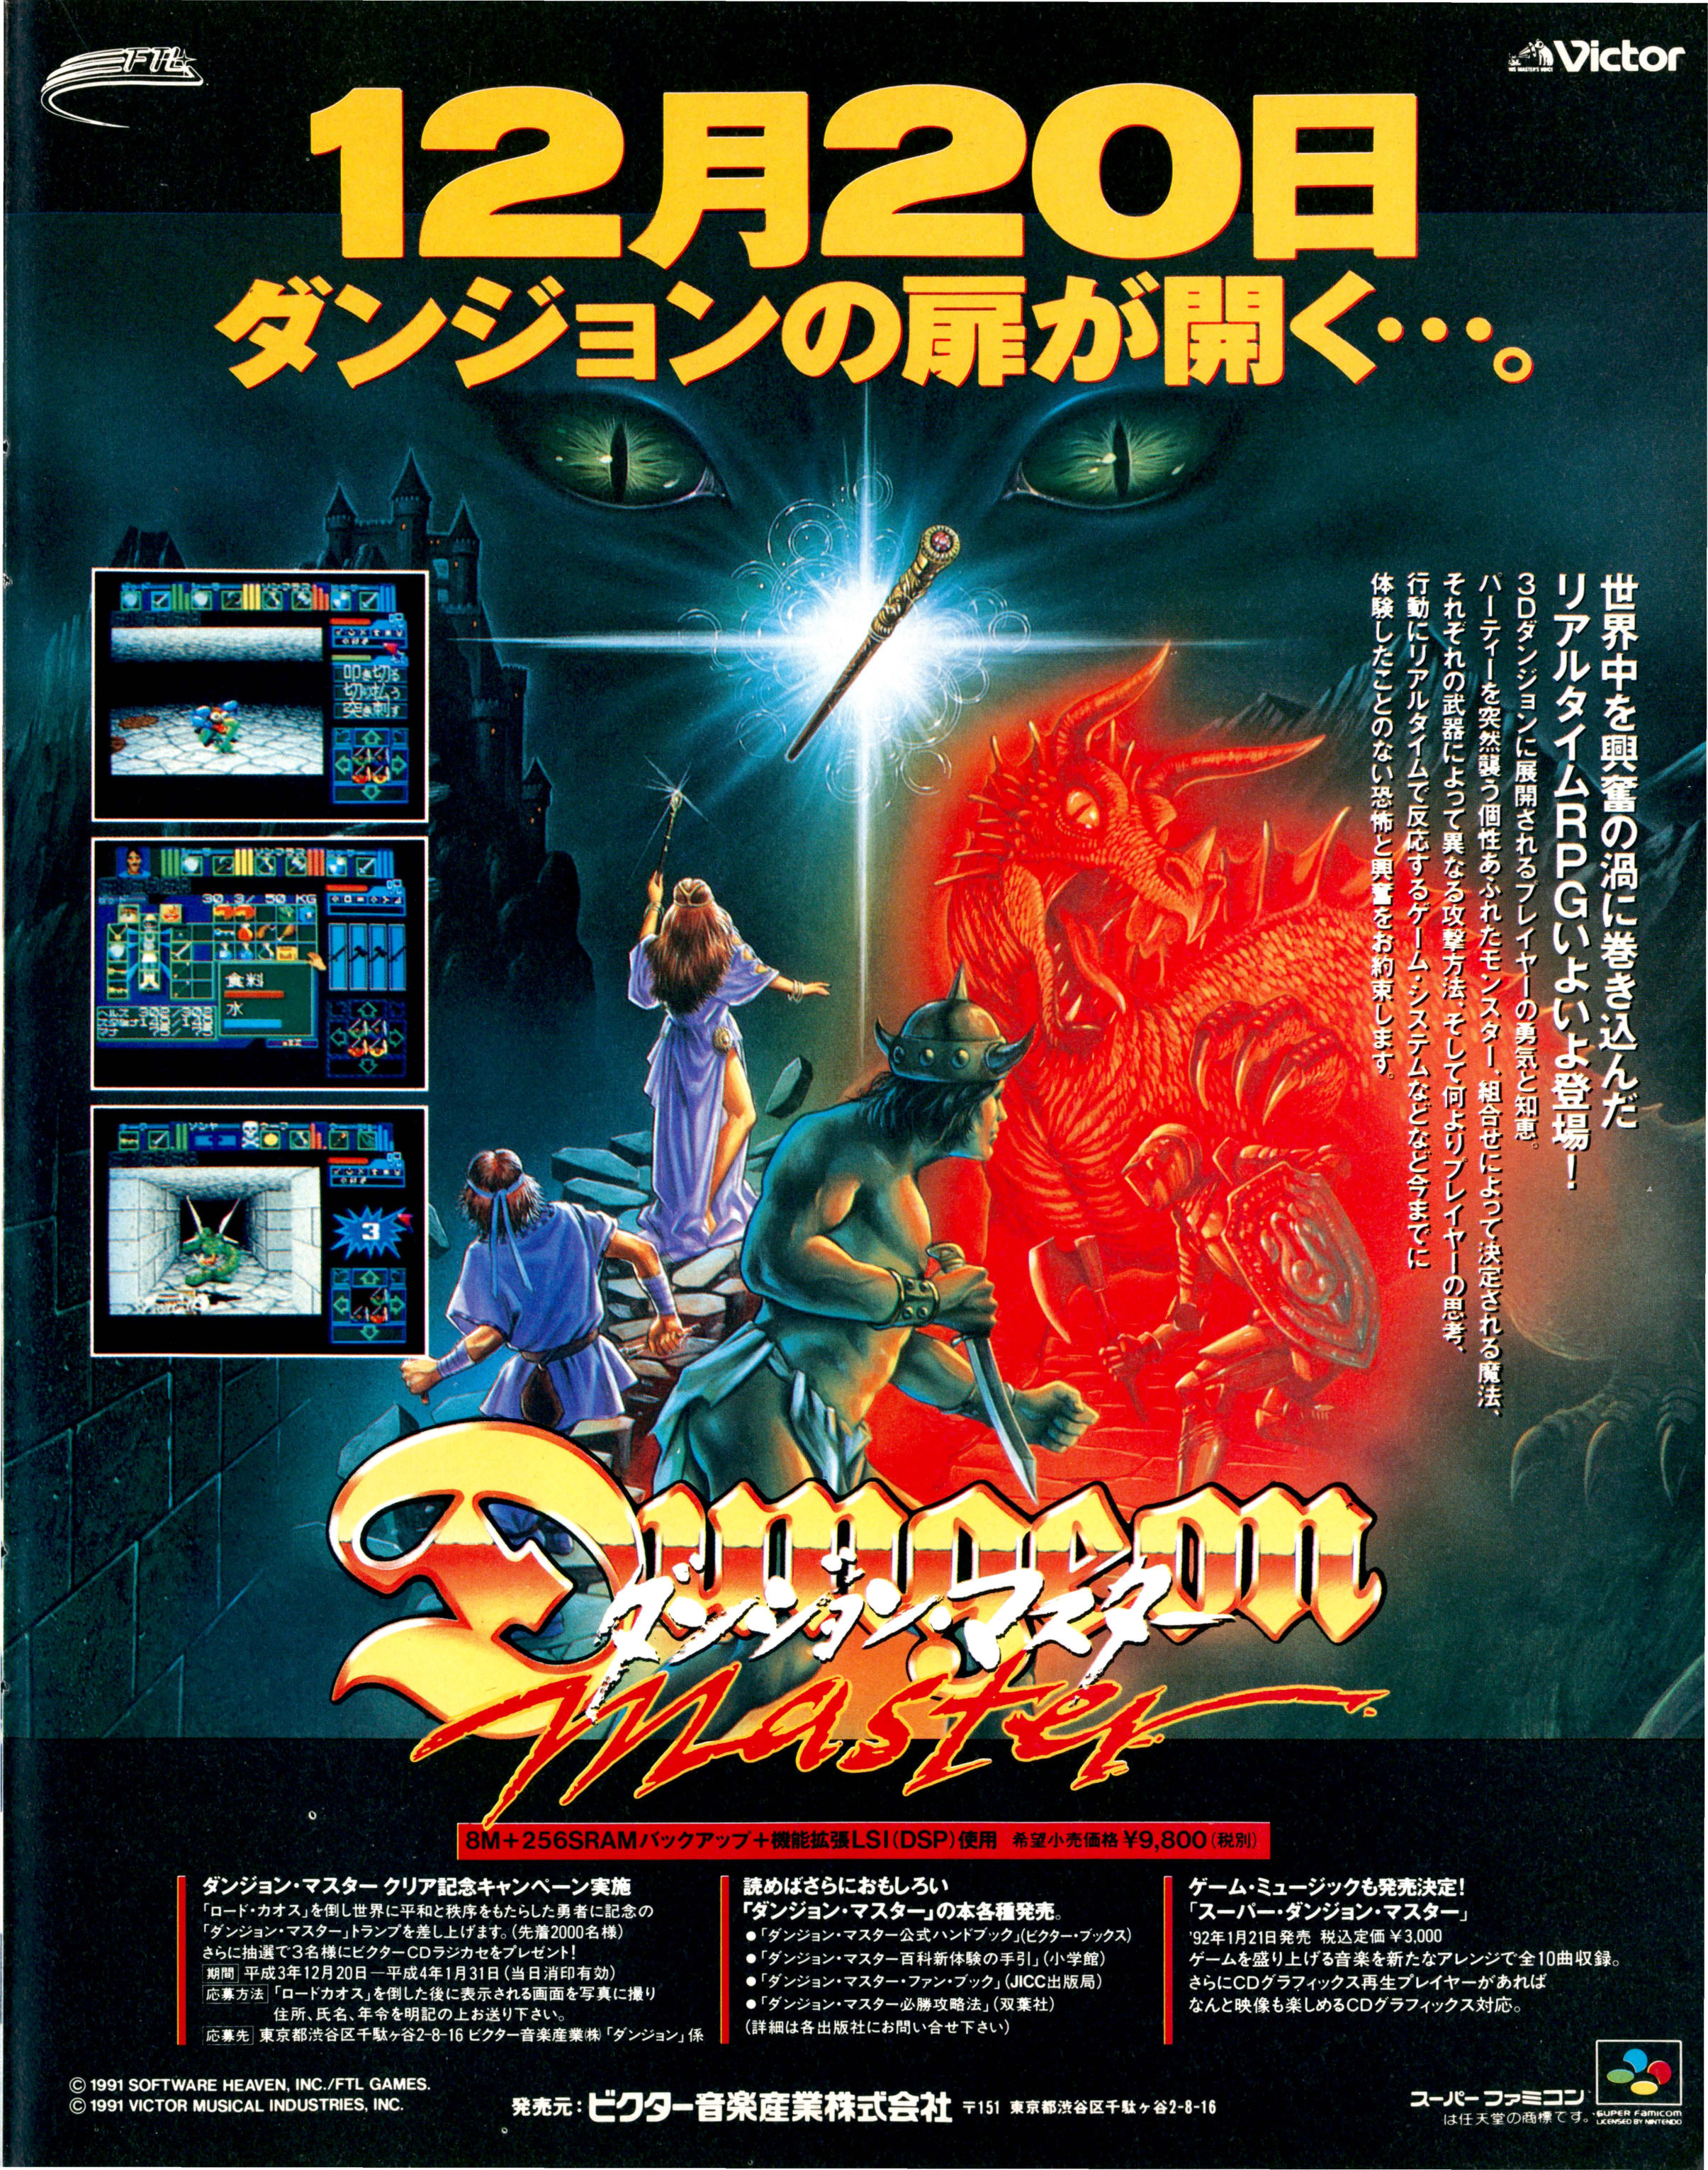 Dungeon Master for Super Famicom Advertisement published in Japanese magazine 'Famitsu', Issue #159 03 January 1992, Page 117